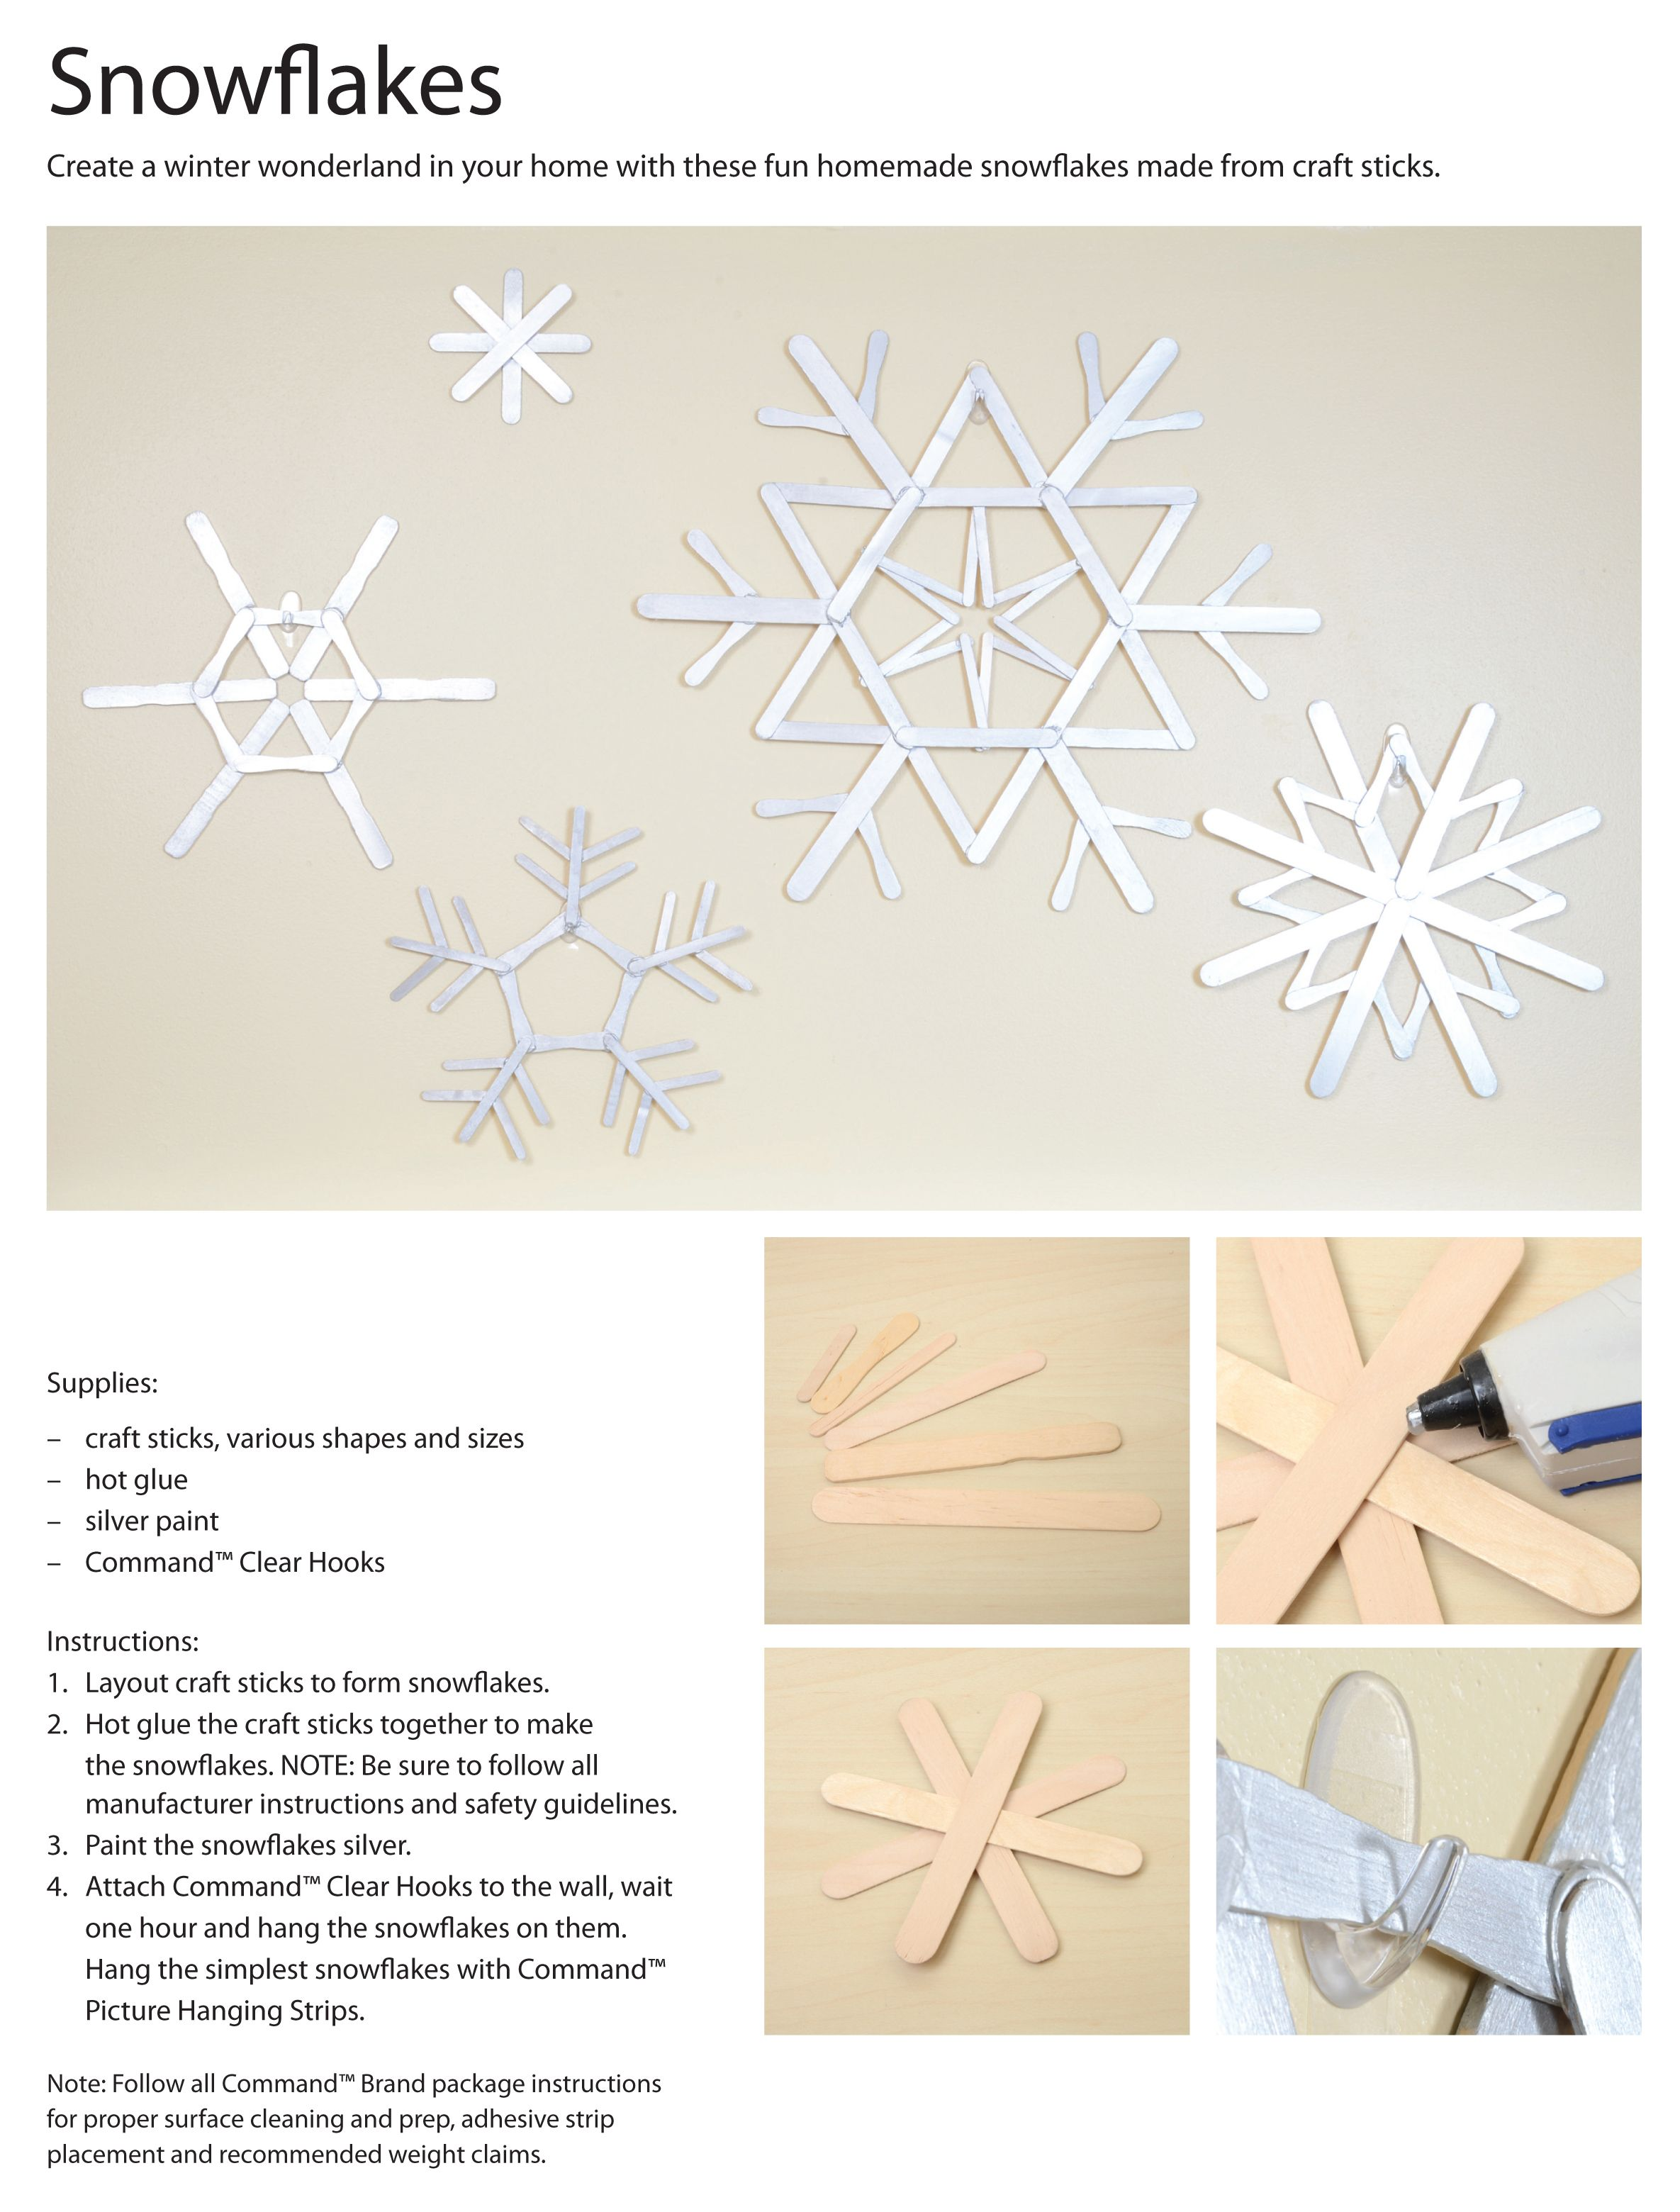 These Snowflakes Are Simple To Make And Easy To Hang Up Without